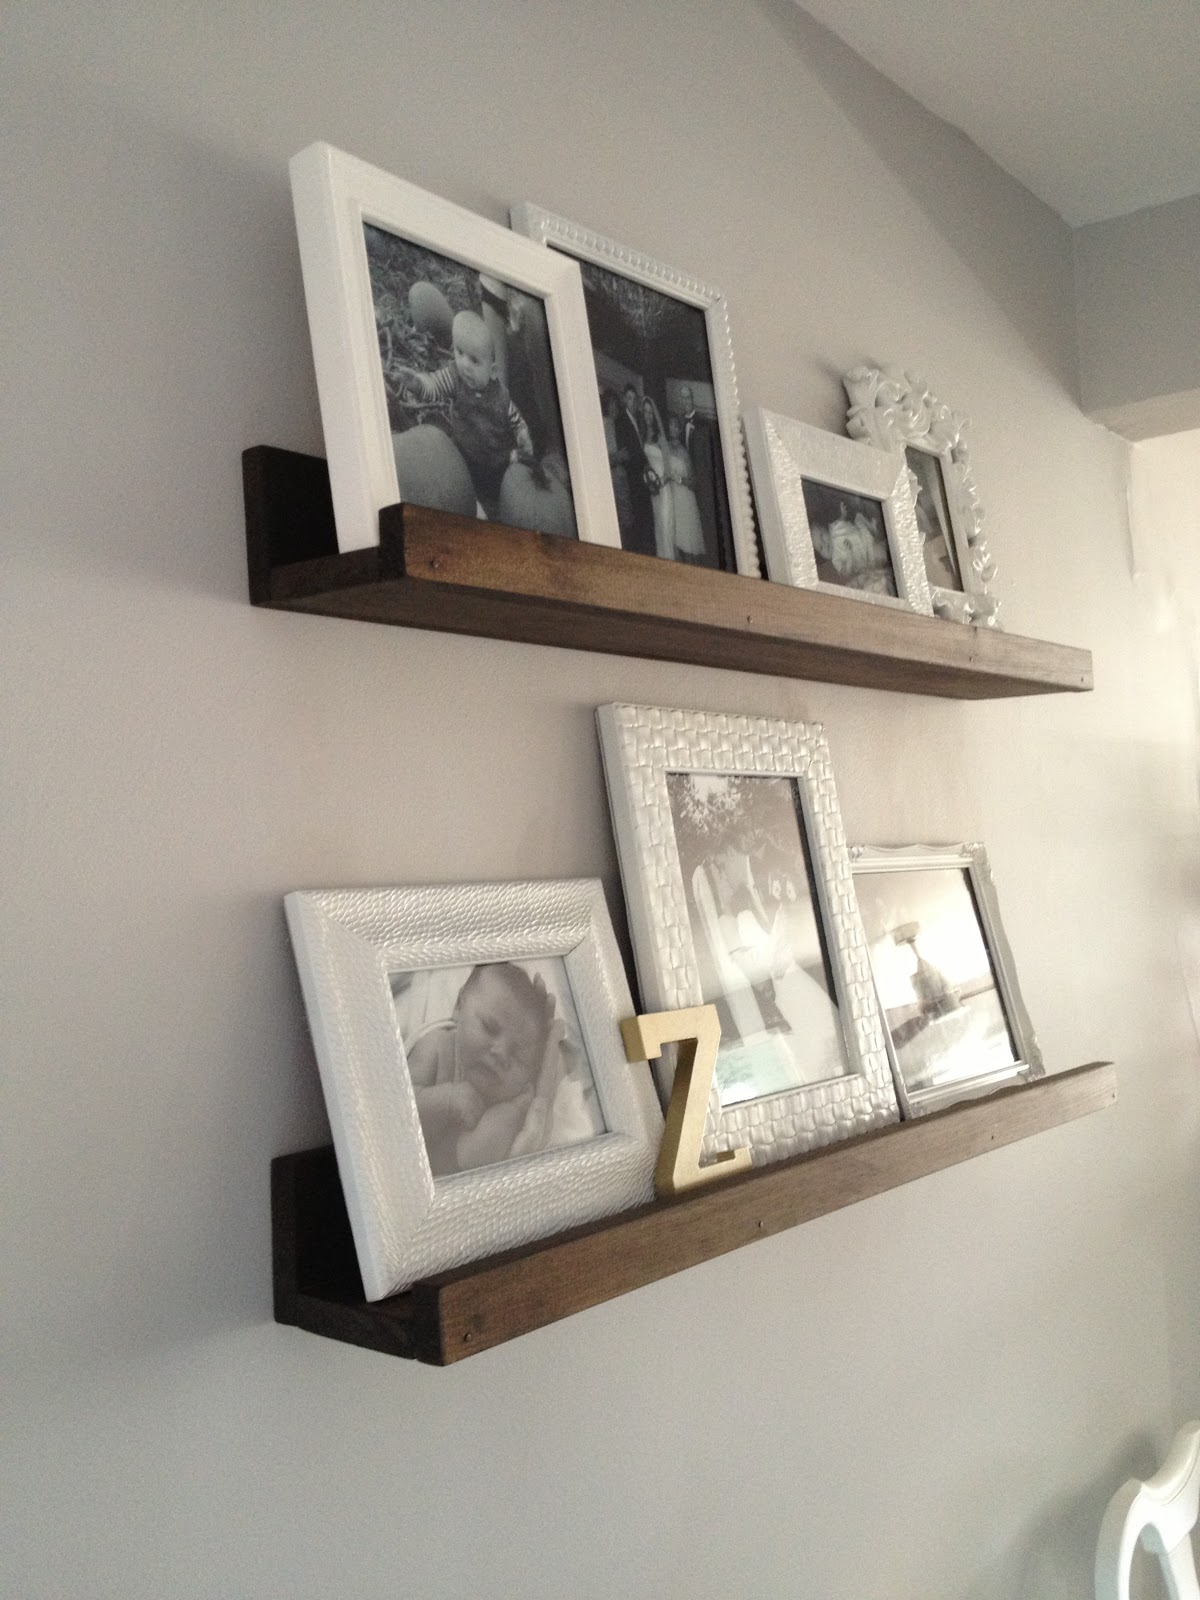 Pictures Of Wall Shelves Retro Ranch Reno Diy Wood Shelves